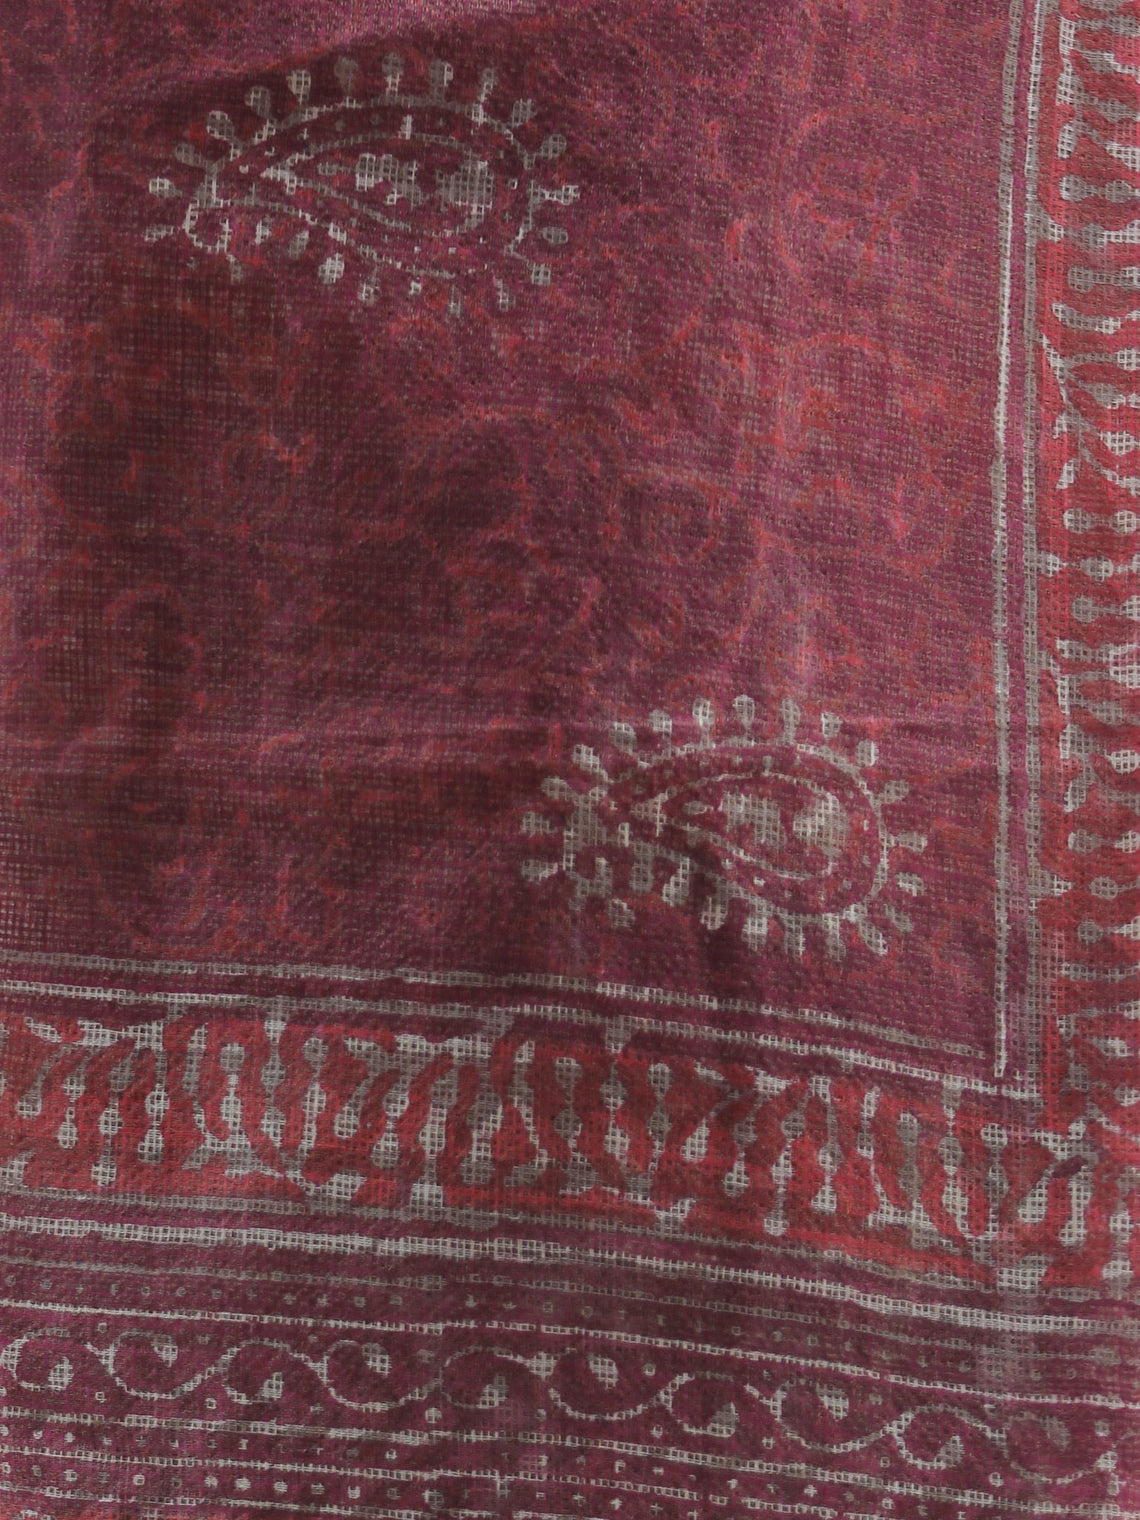 Plum Ivory Orange Kota Doria Cotton Hand Block Printed Dupatta  - D04170436